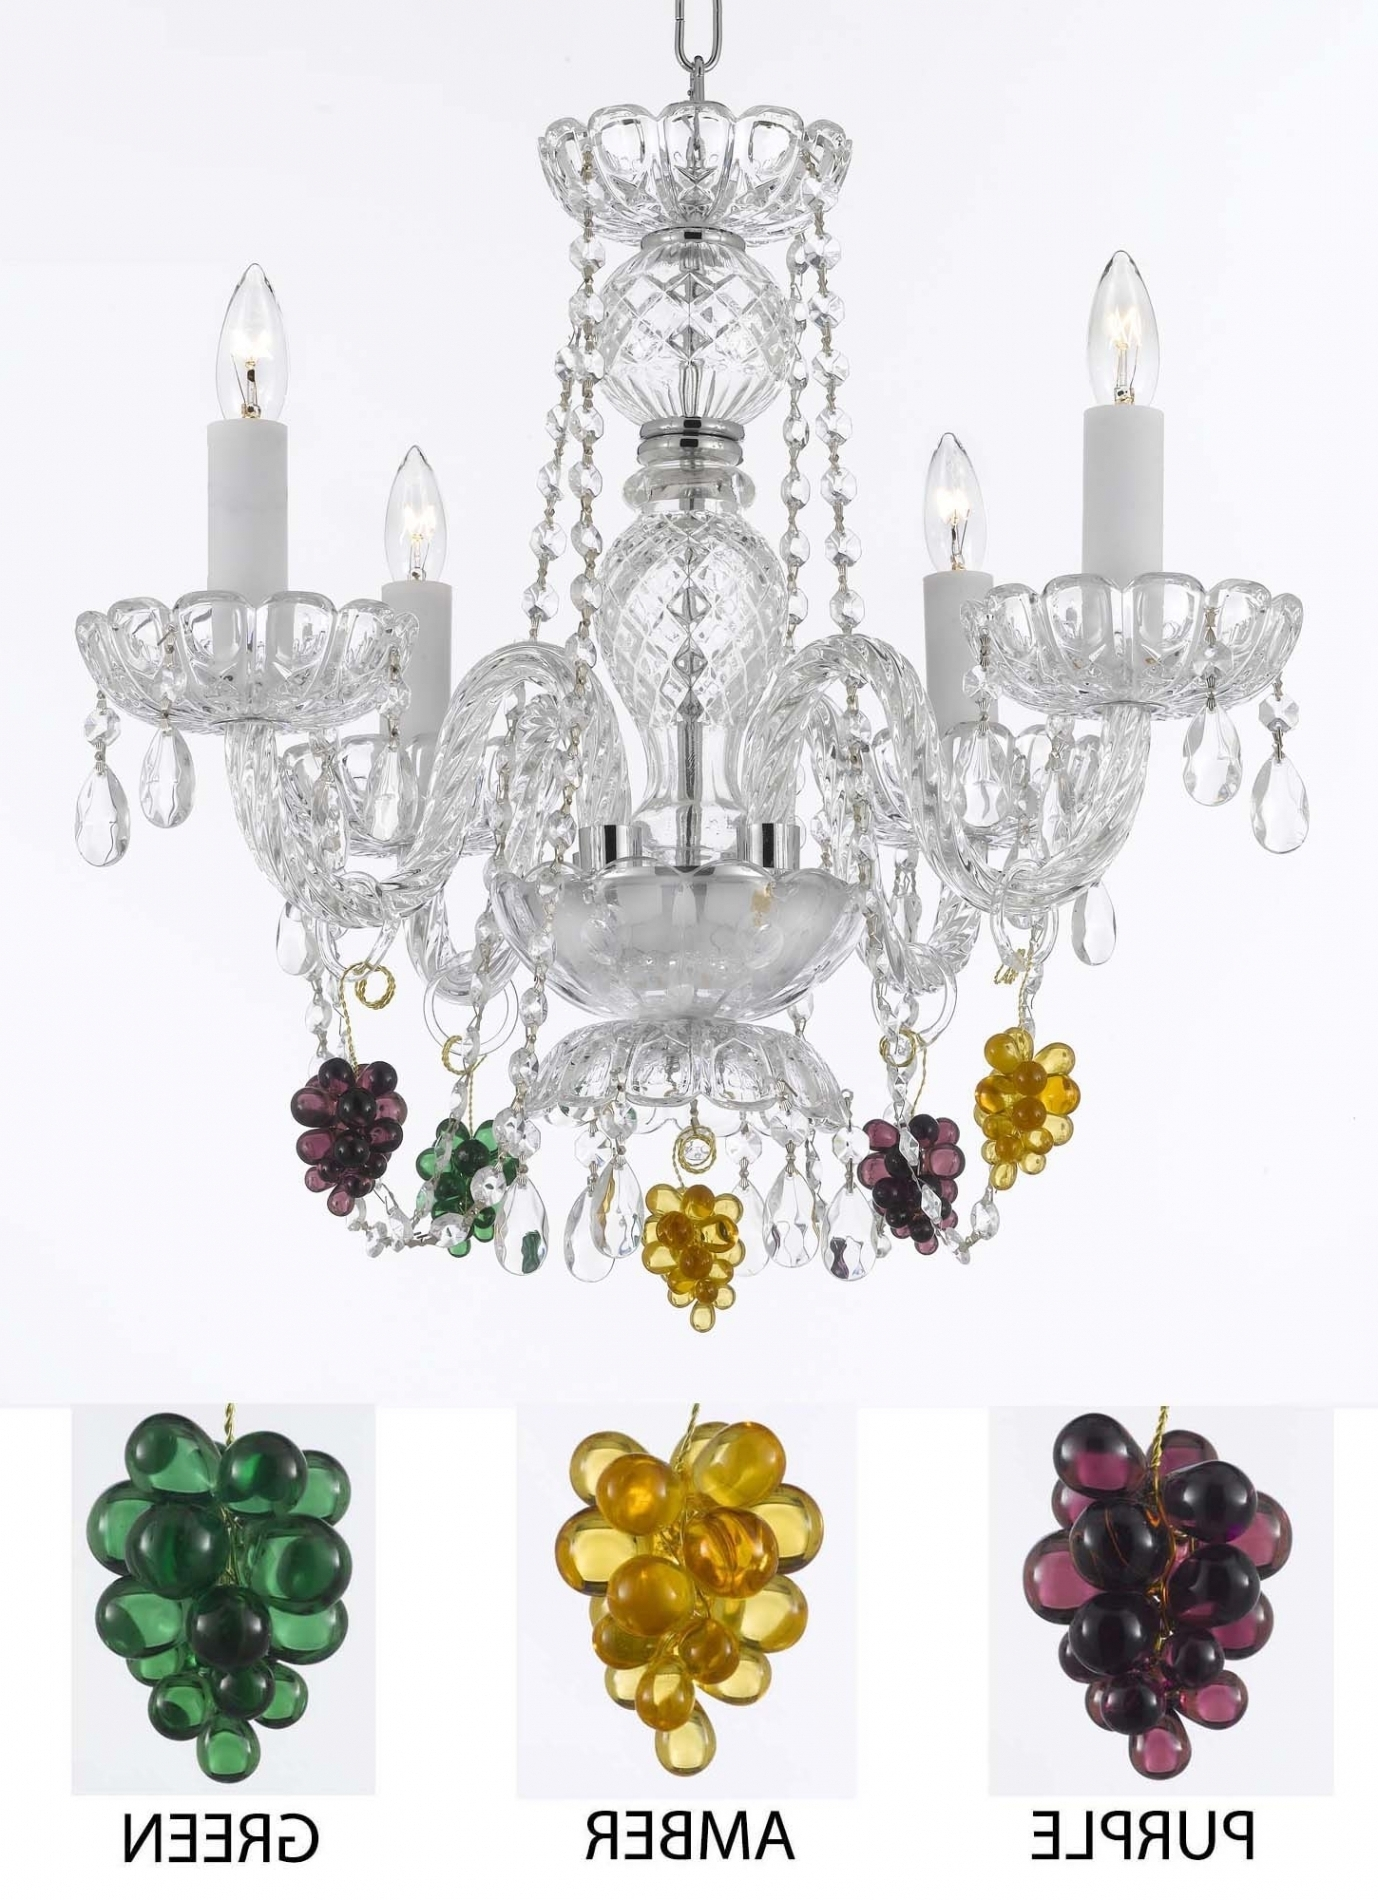 2018 20 Photo Of Murano Chandelier Replica With Regard To Murano Chandelier Replica (View 2 of 15)